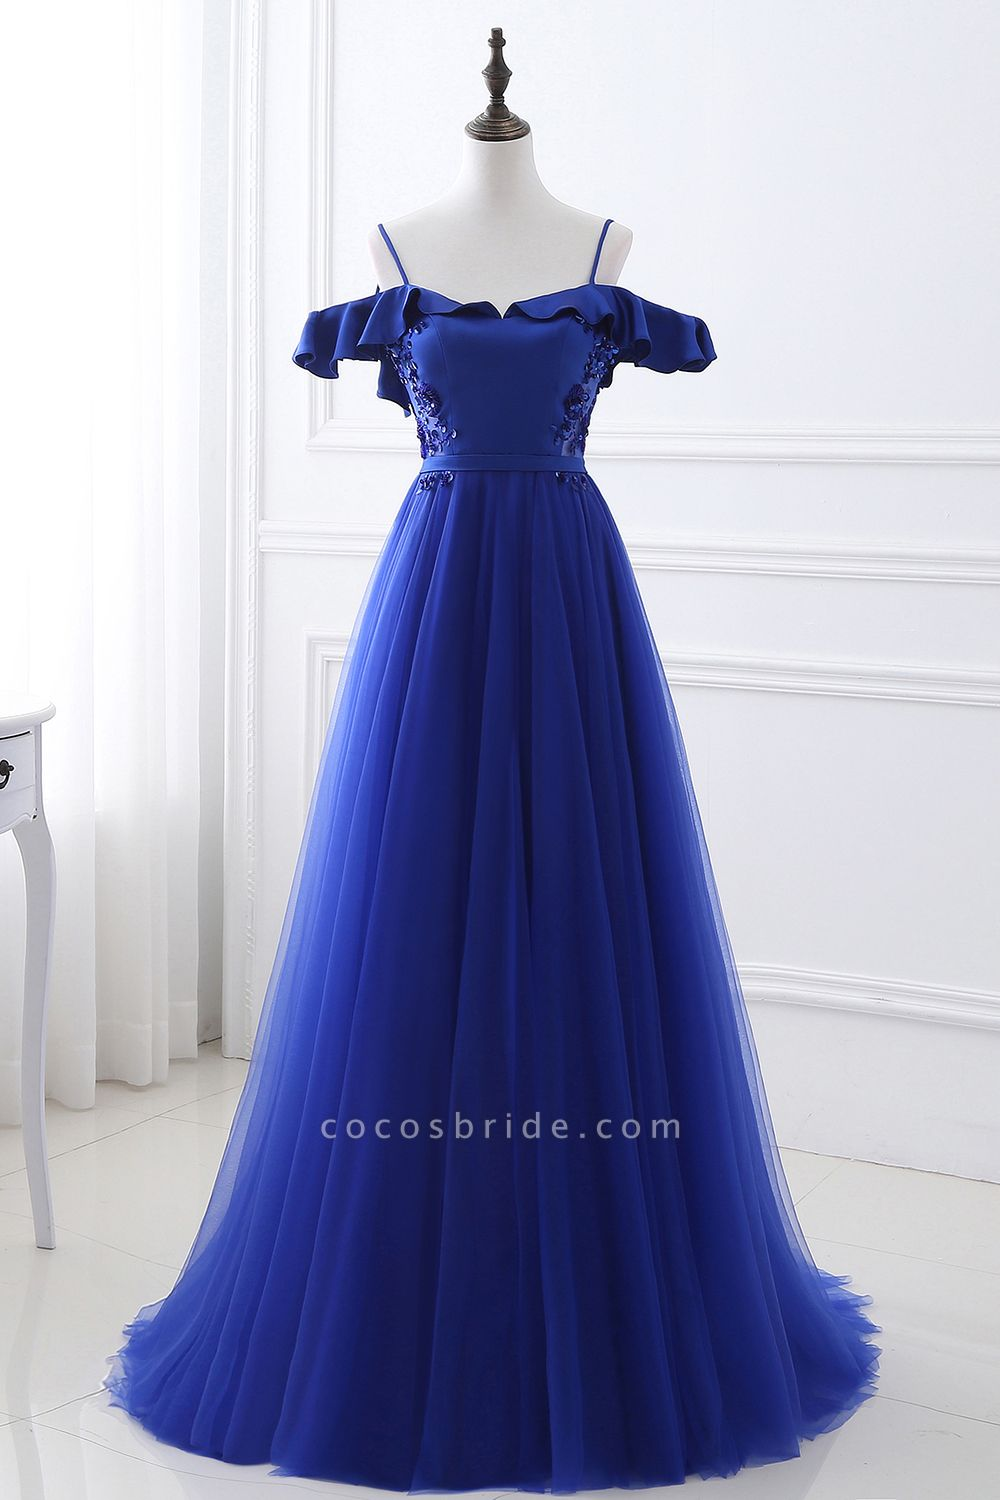 CHANEL   Ball Gown Off-the-shoulder Floor-length Blue Tulle Prom Dress